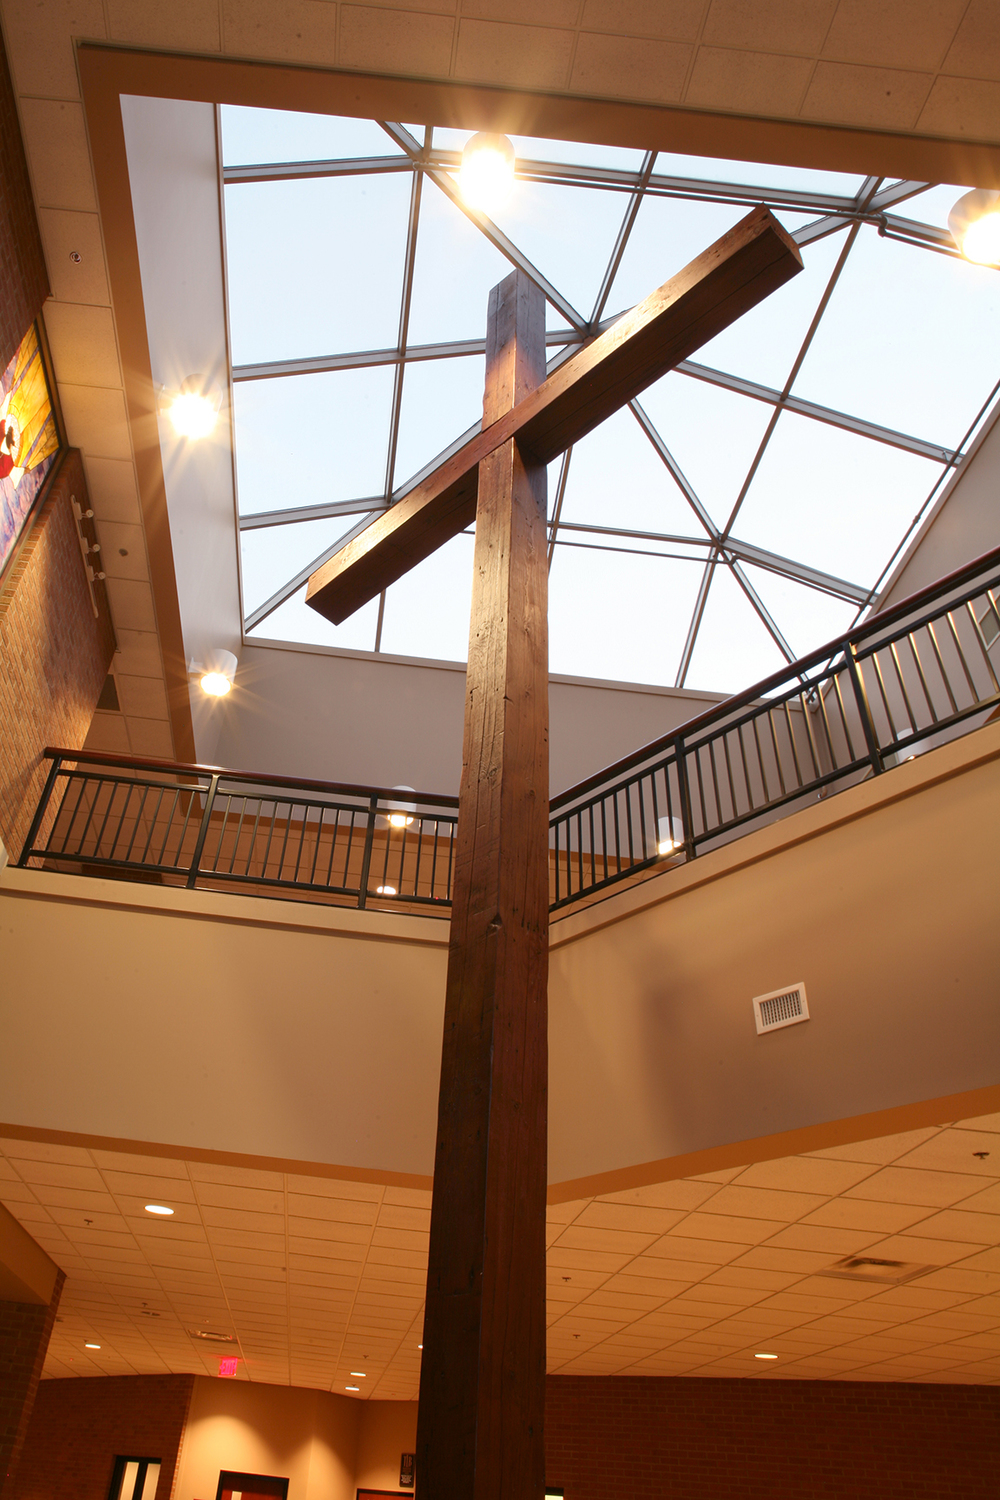 www.rcmarchitects.com - vision - winebrenner cross